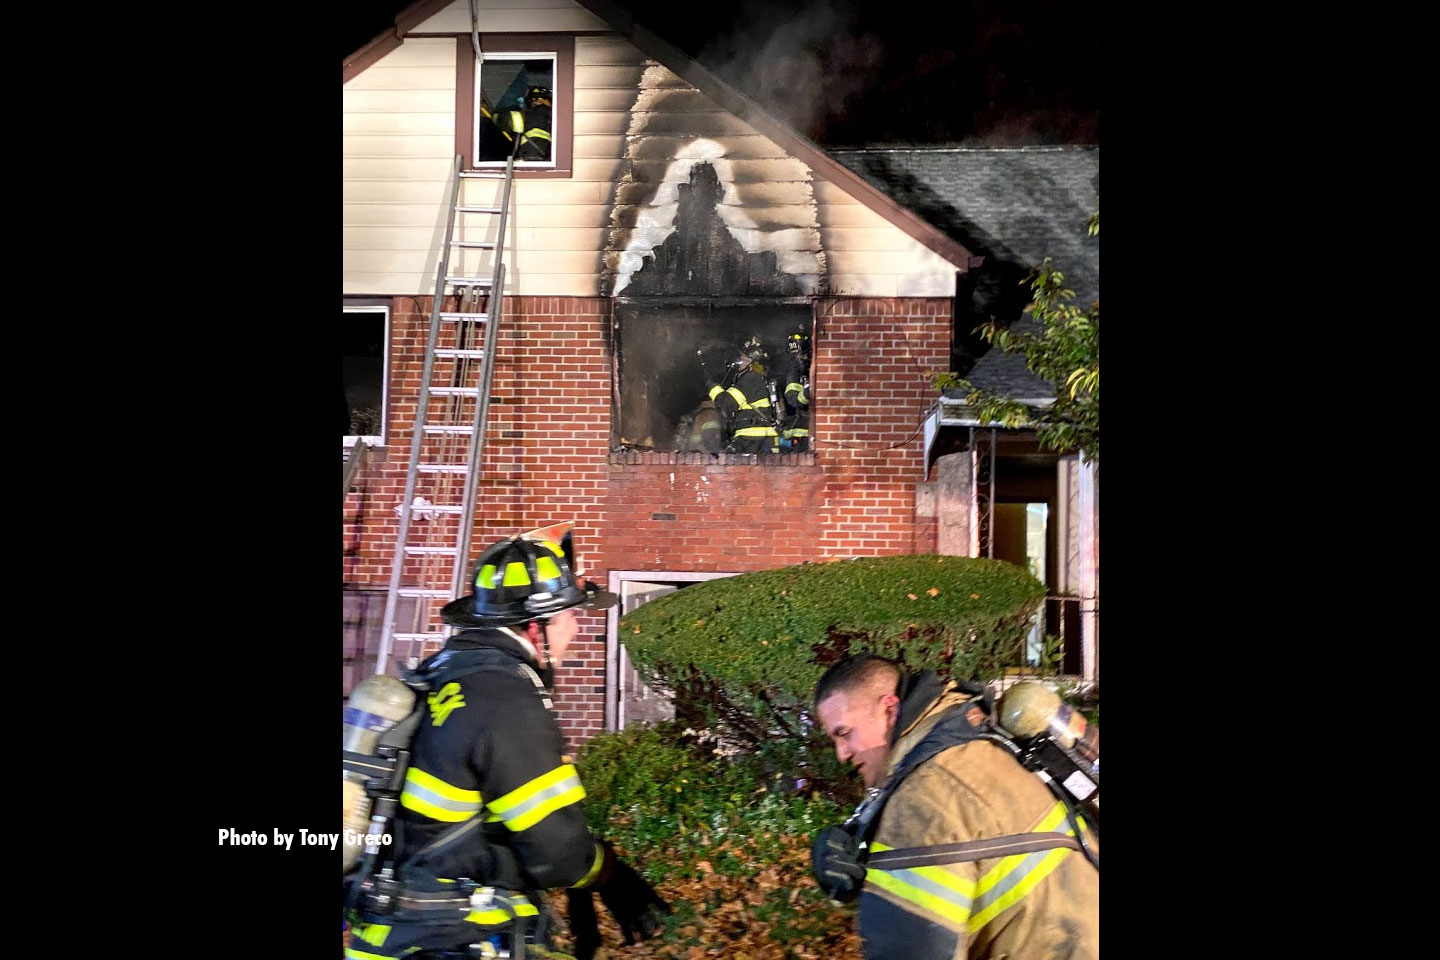 Firefighters at the scene of the residential fire.